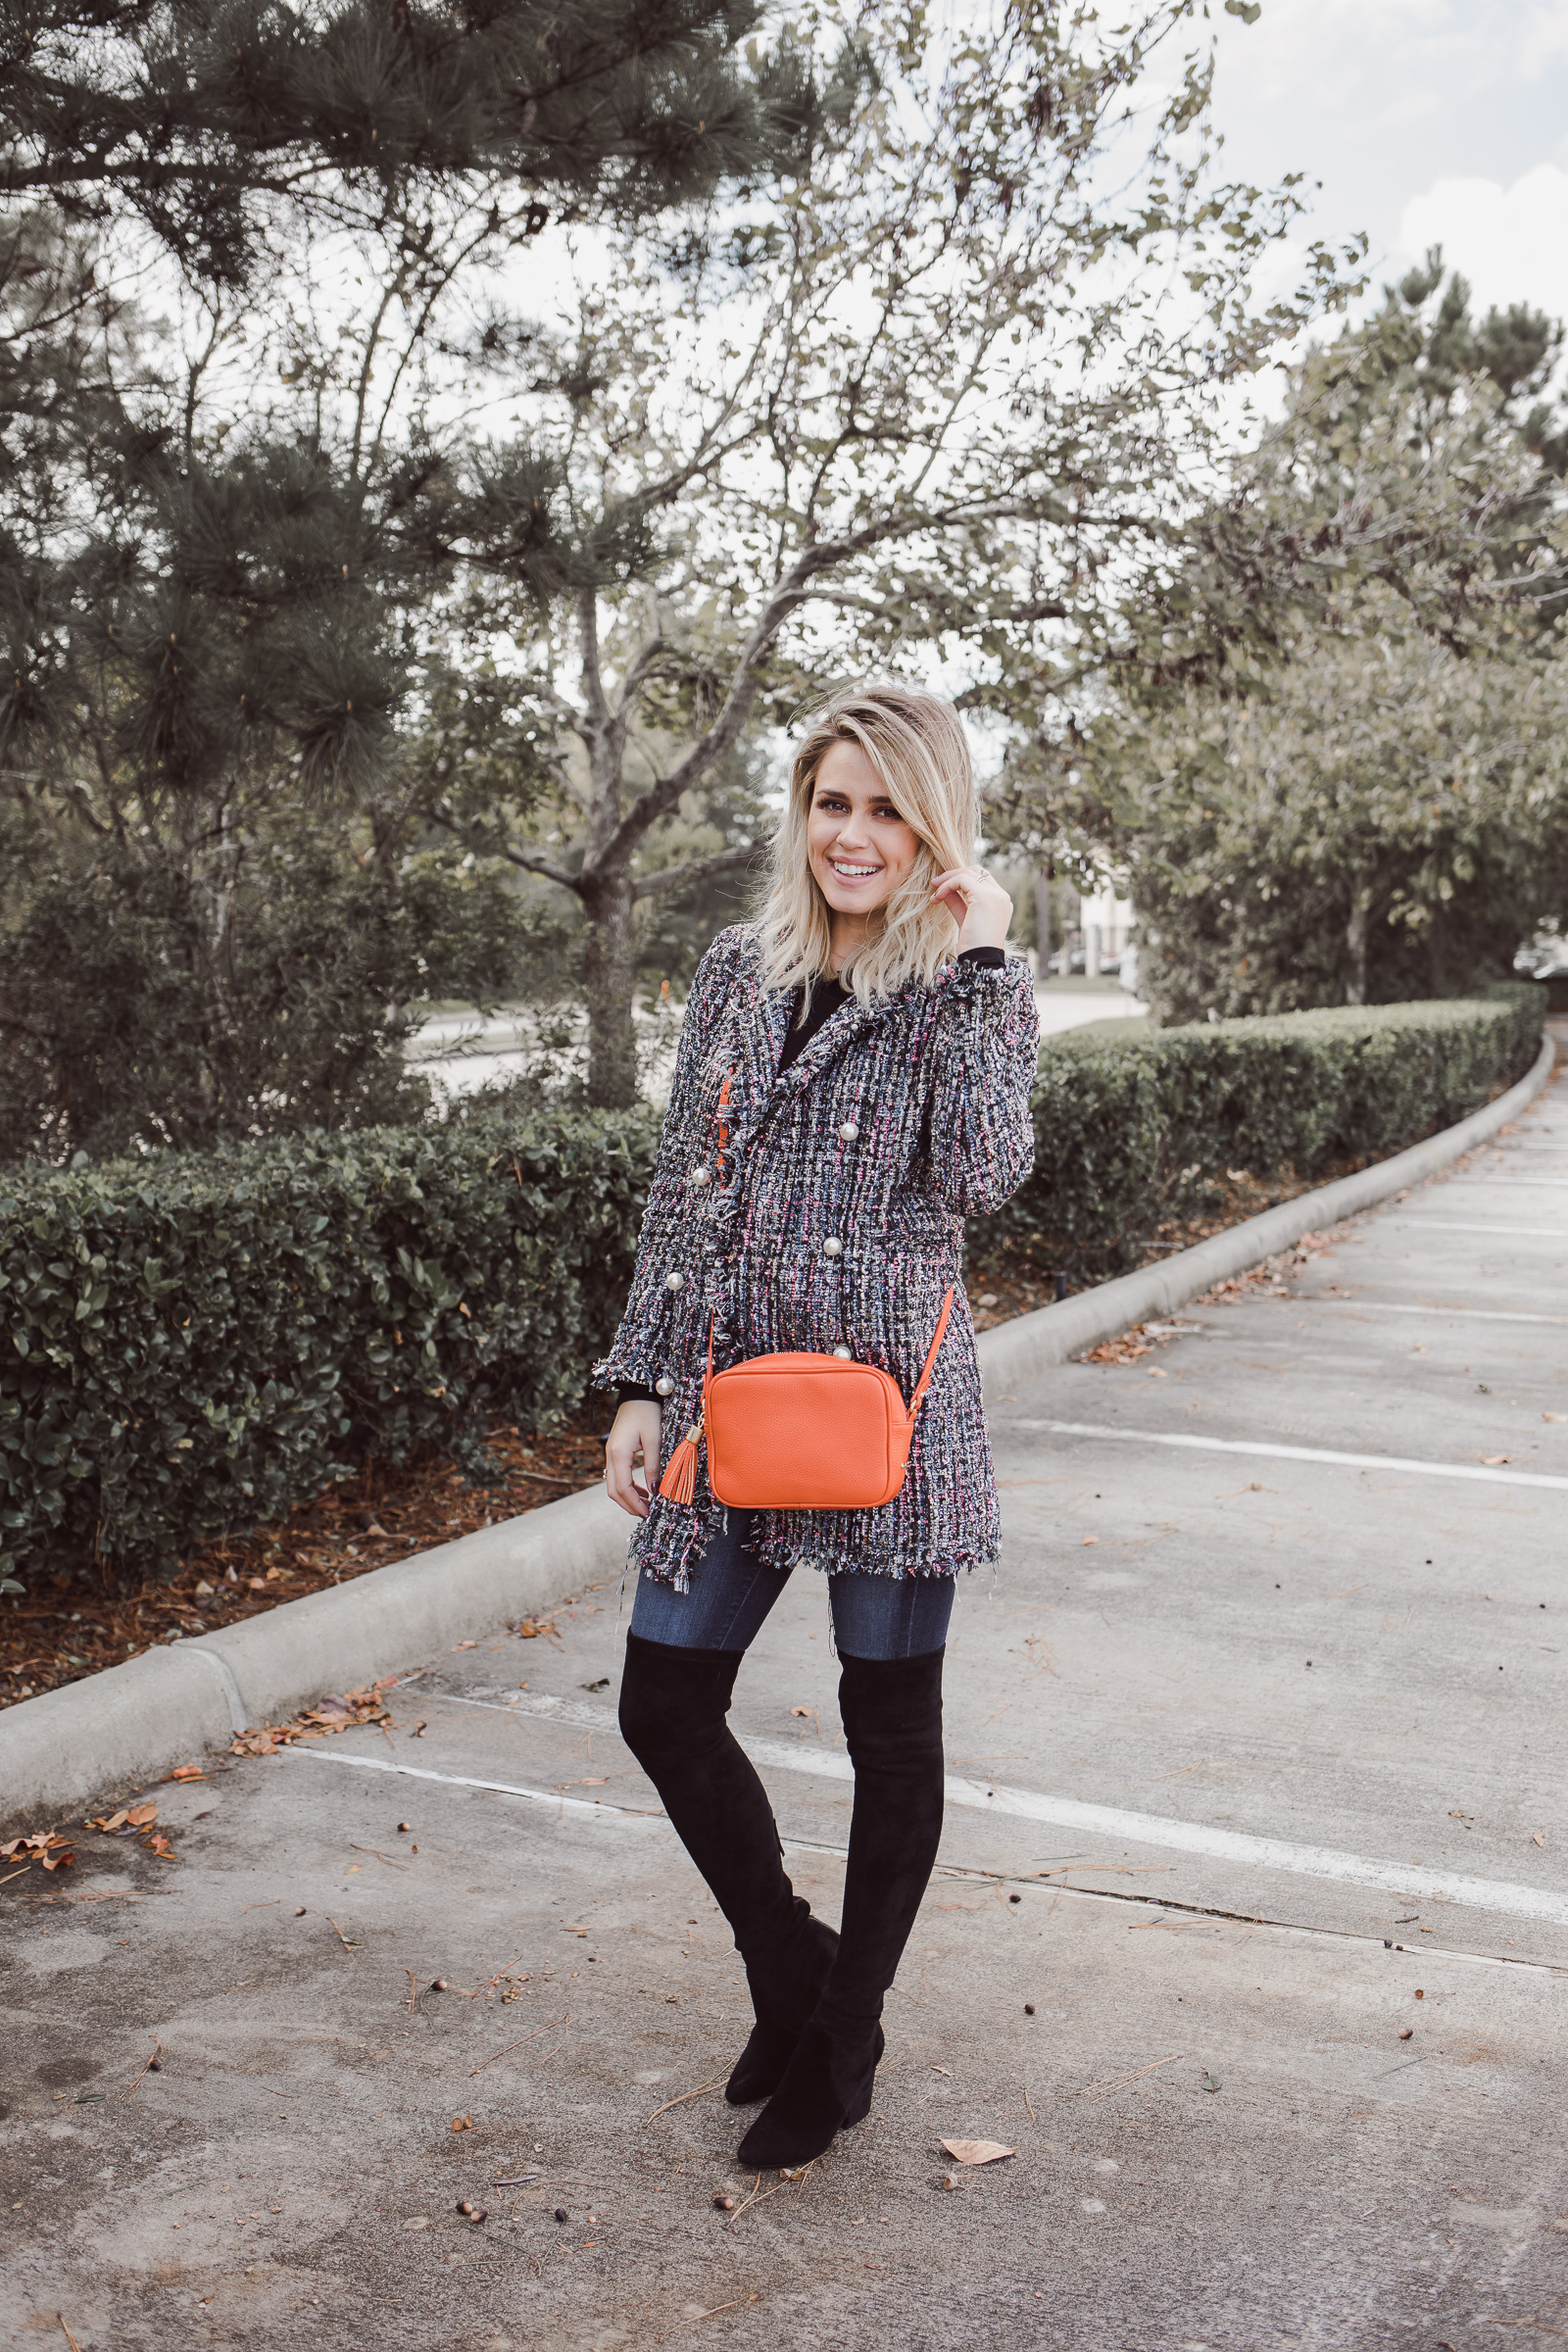 Houston fashion blogger Uptown with Elly Brown shares how to style a Tweed Jacket casually for Fall with over the knee boots.